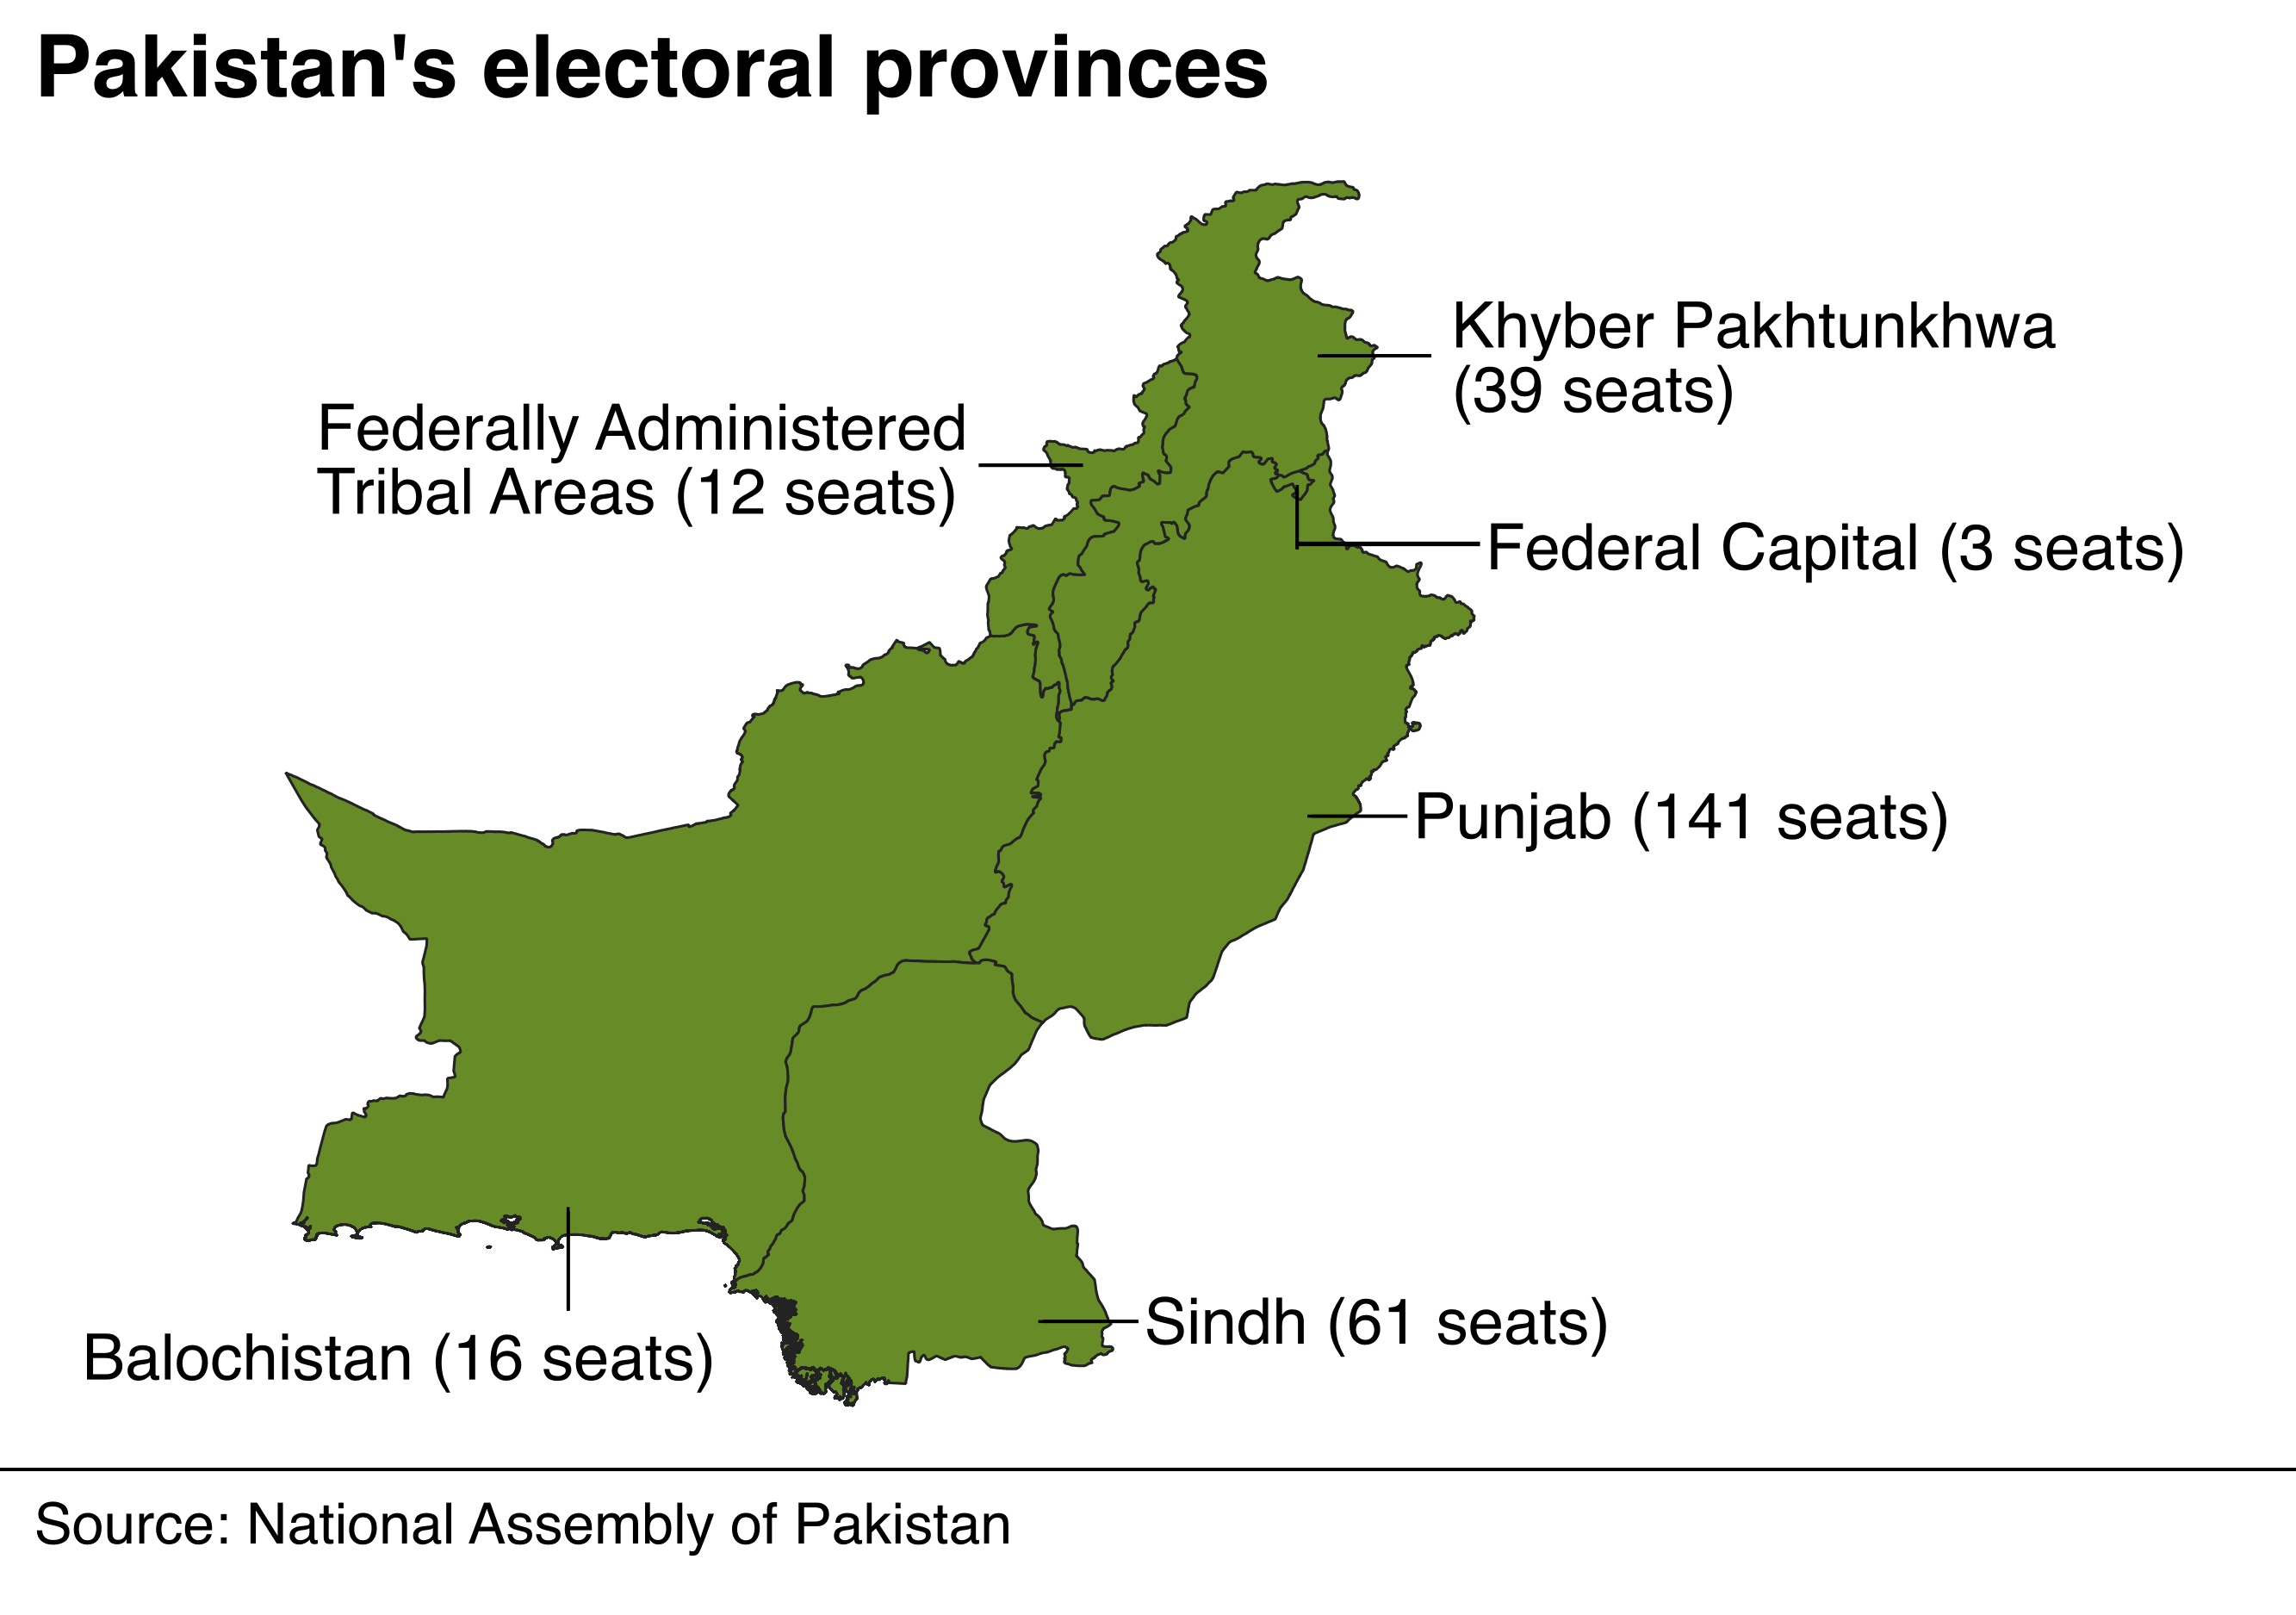 Map showing Pakistan's electoral provinces and the number of seats in each one. More than half - 141 out of 272 - are in Punjab